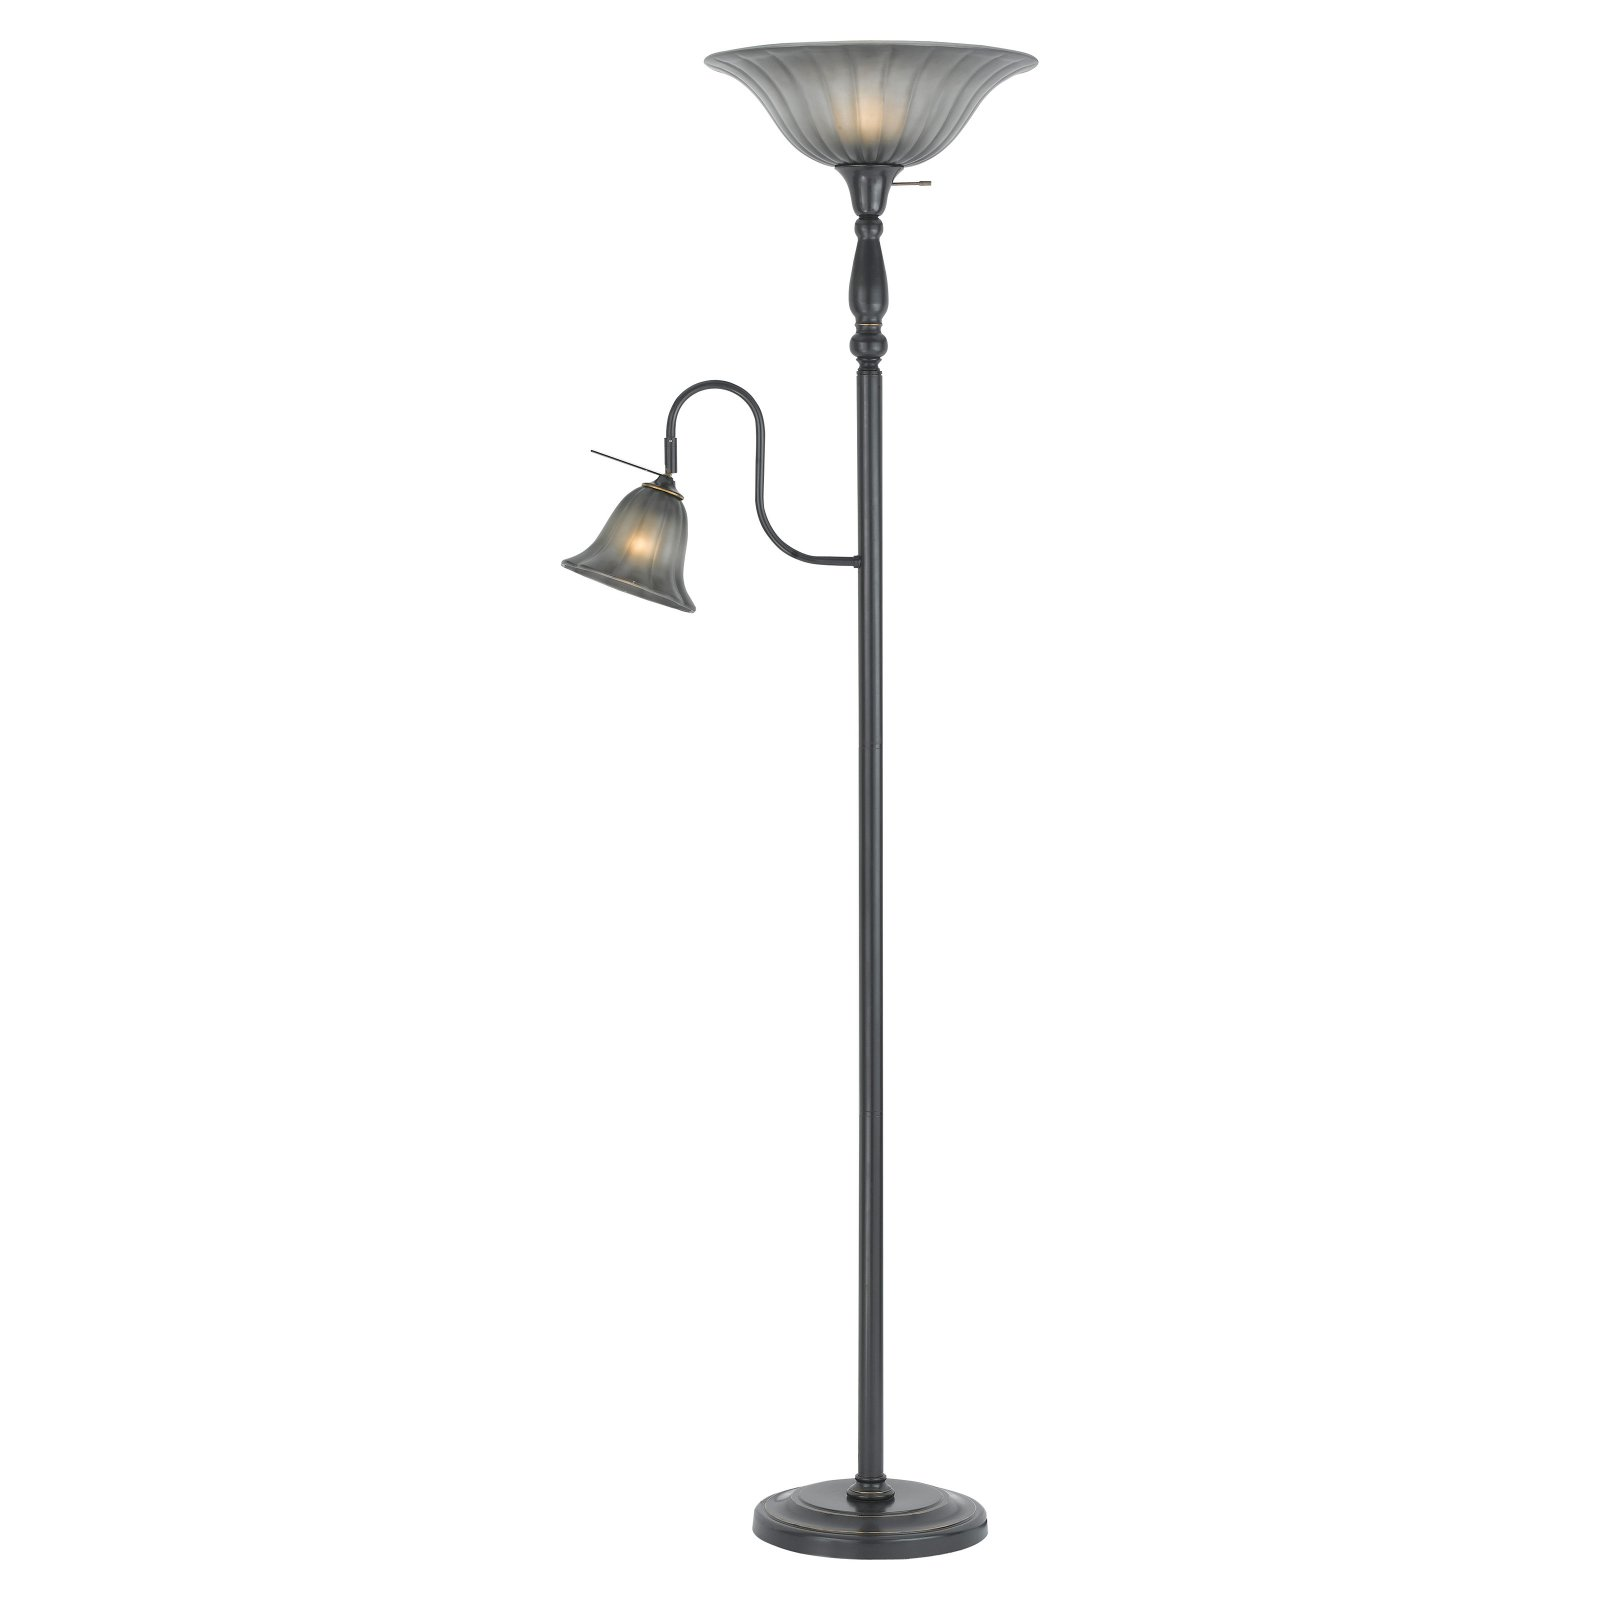 Cal Lighting BO-2052-DB Torchiere and Reading Floor Lamp by CAL Lighting